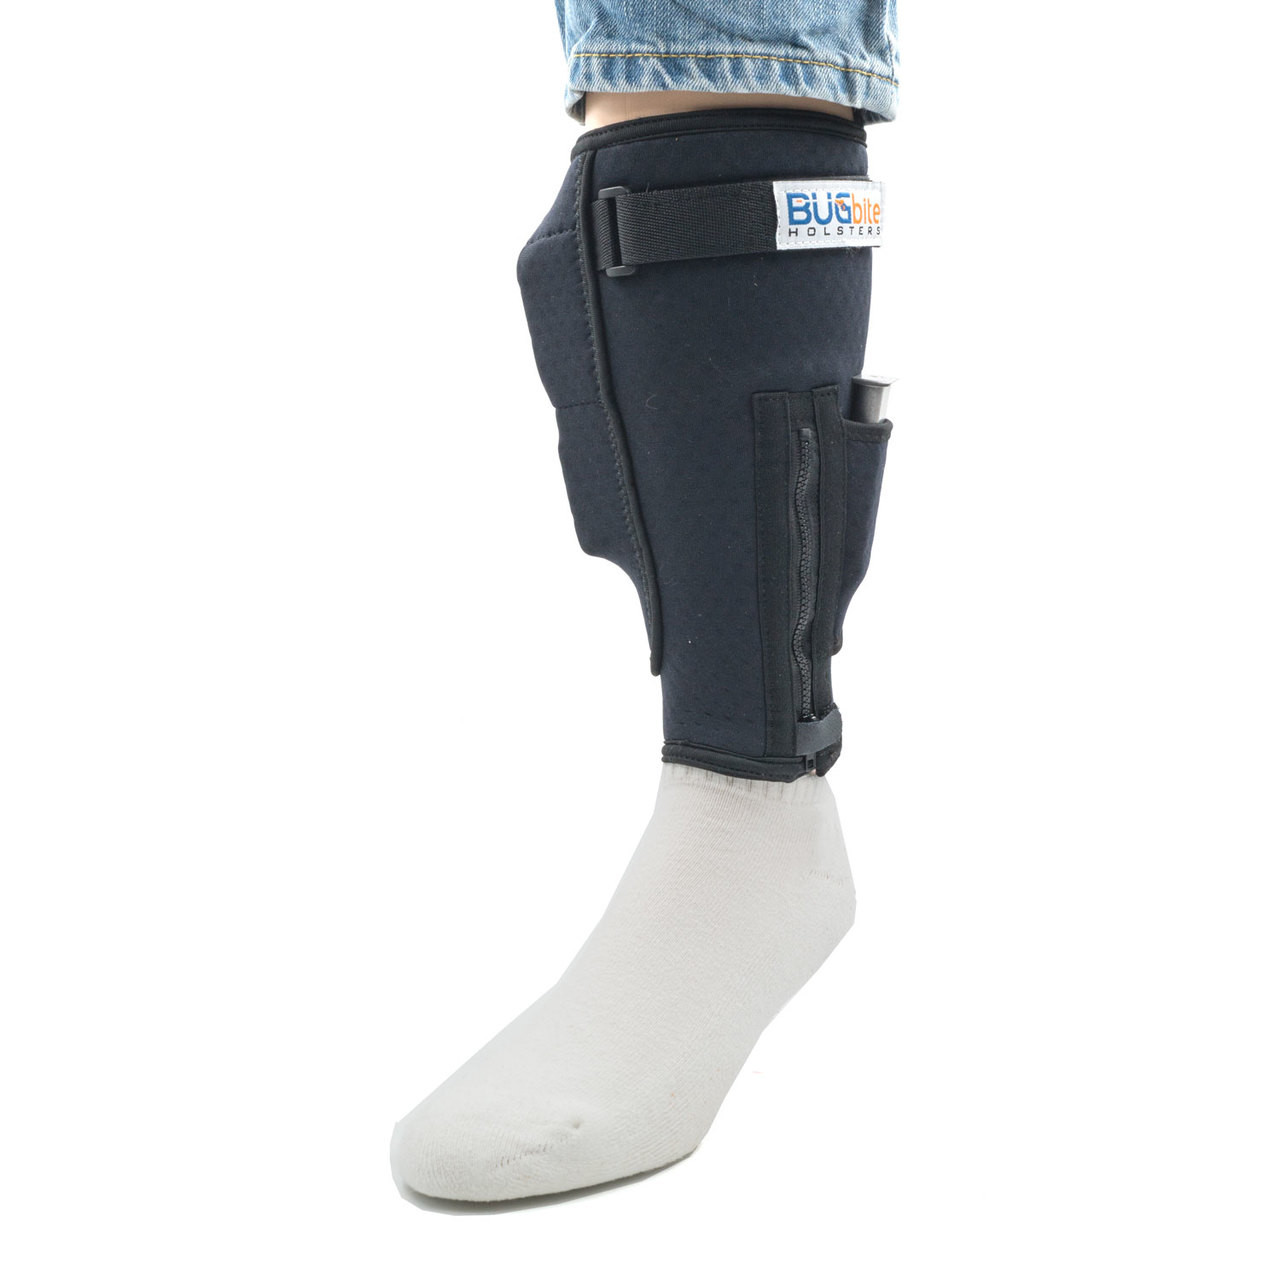 Glock 43 Ankle Holster by BUGBite